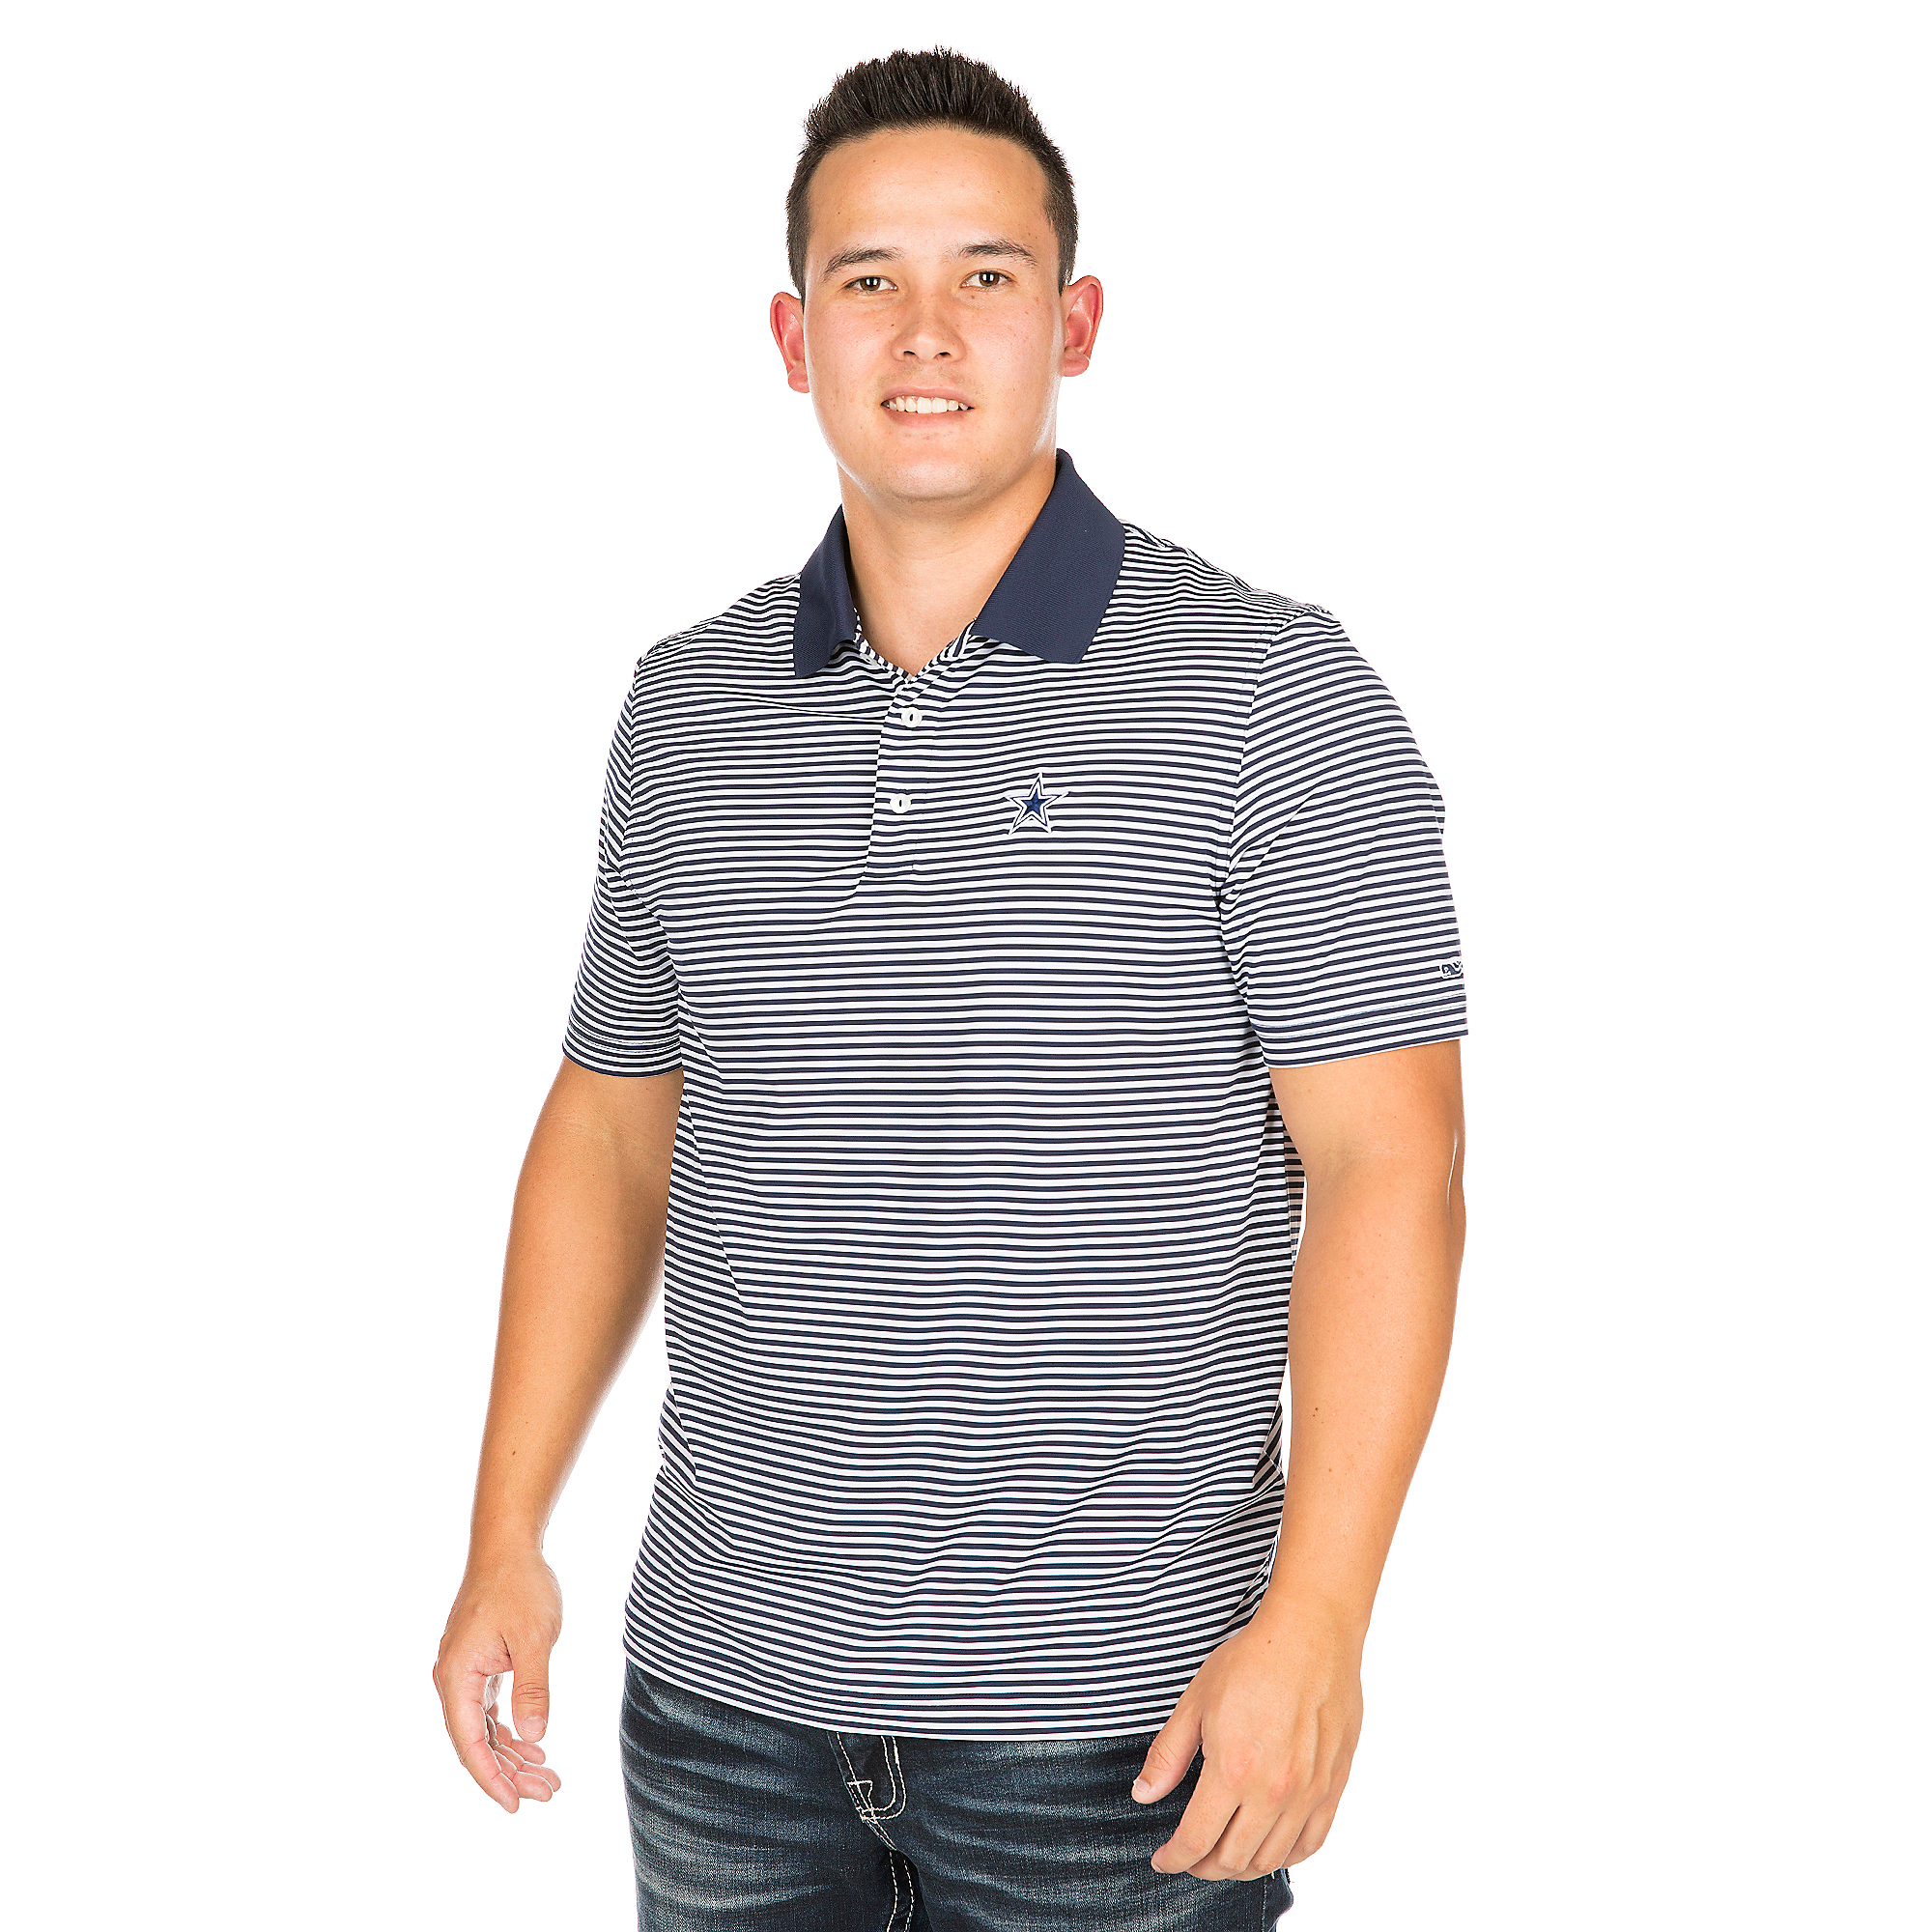 ba89d45cbade Dallas Cowboys Vineyard Vines Porter Stripe Polo